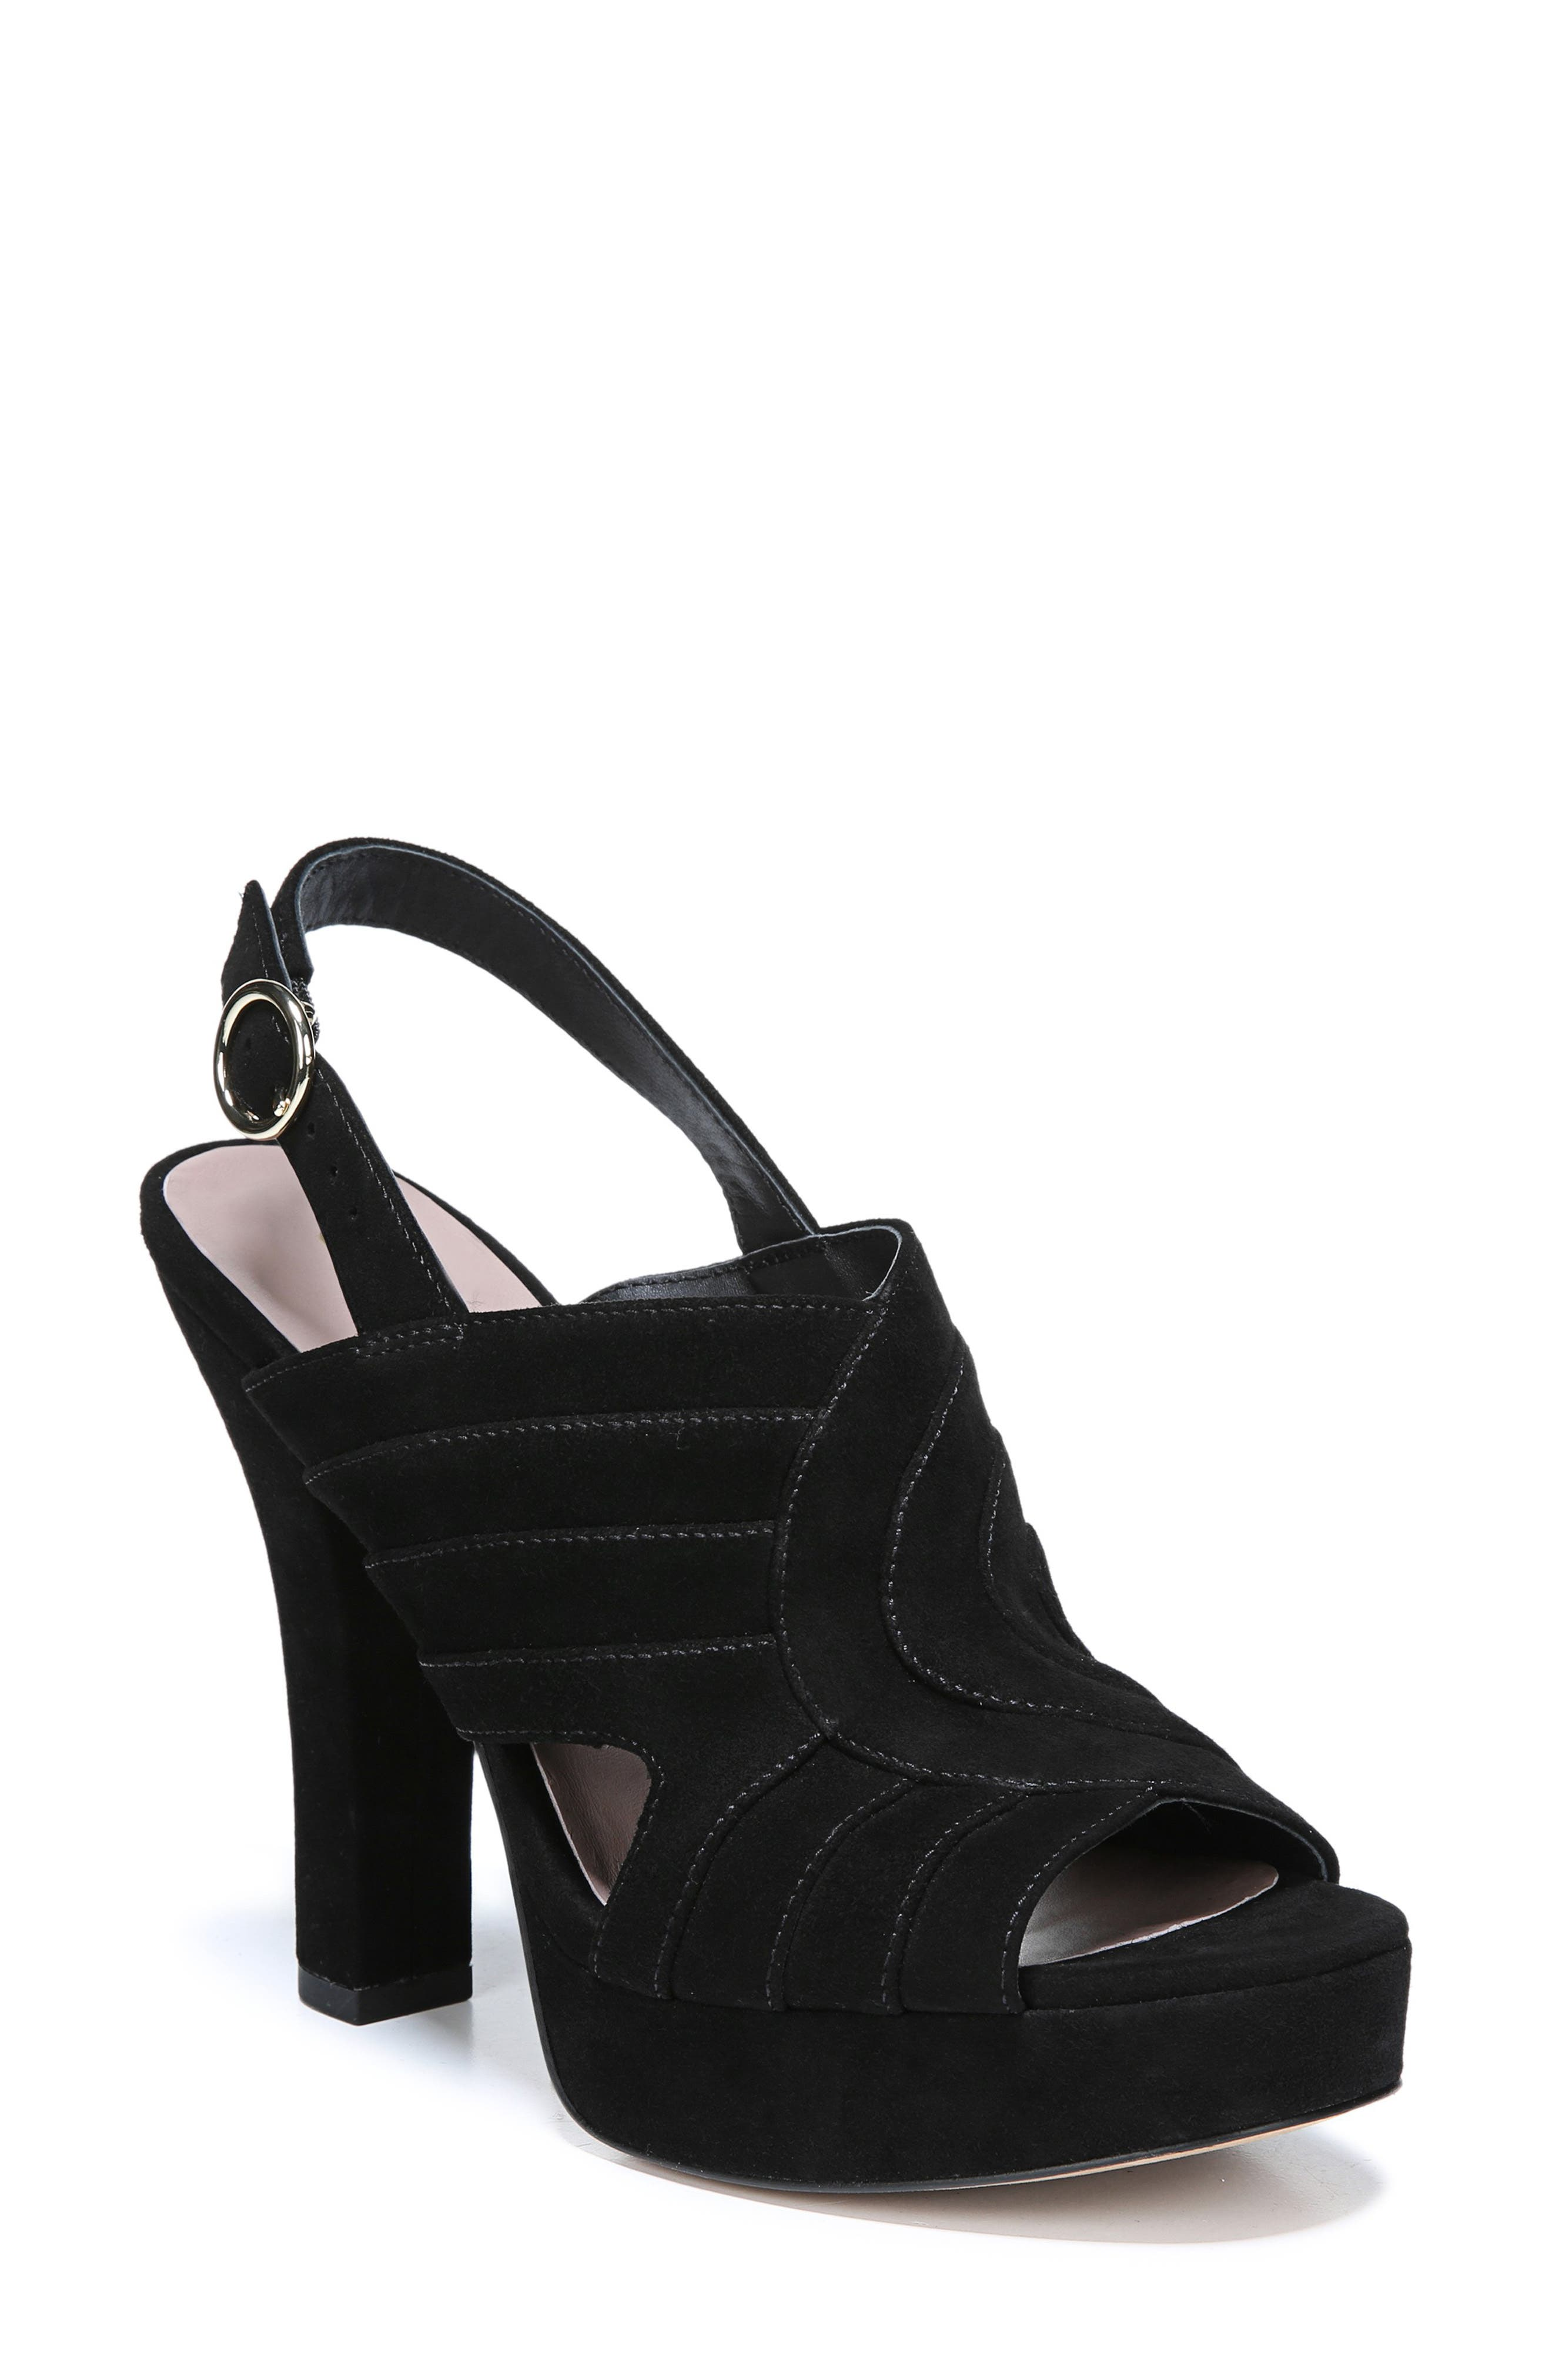 Tabby Platform Sandal,                         Main,                         color, BLACK